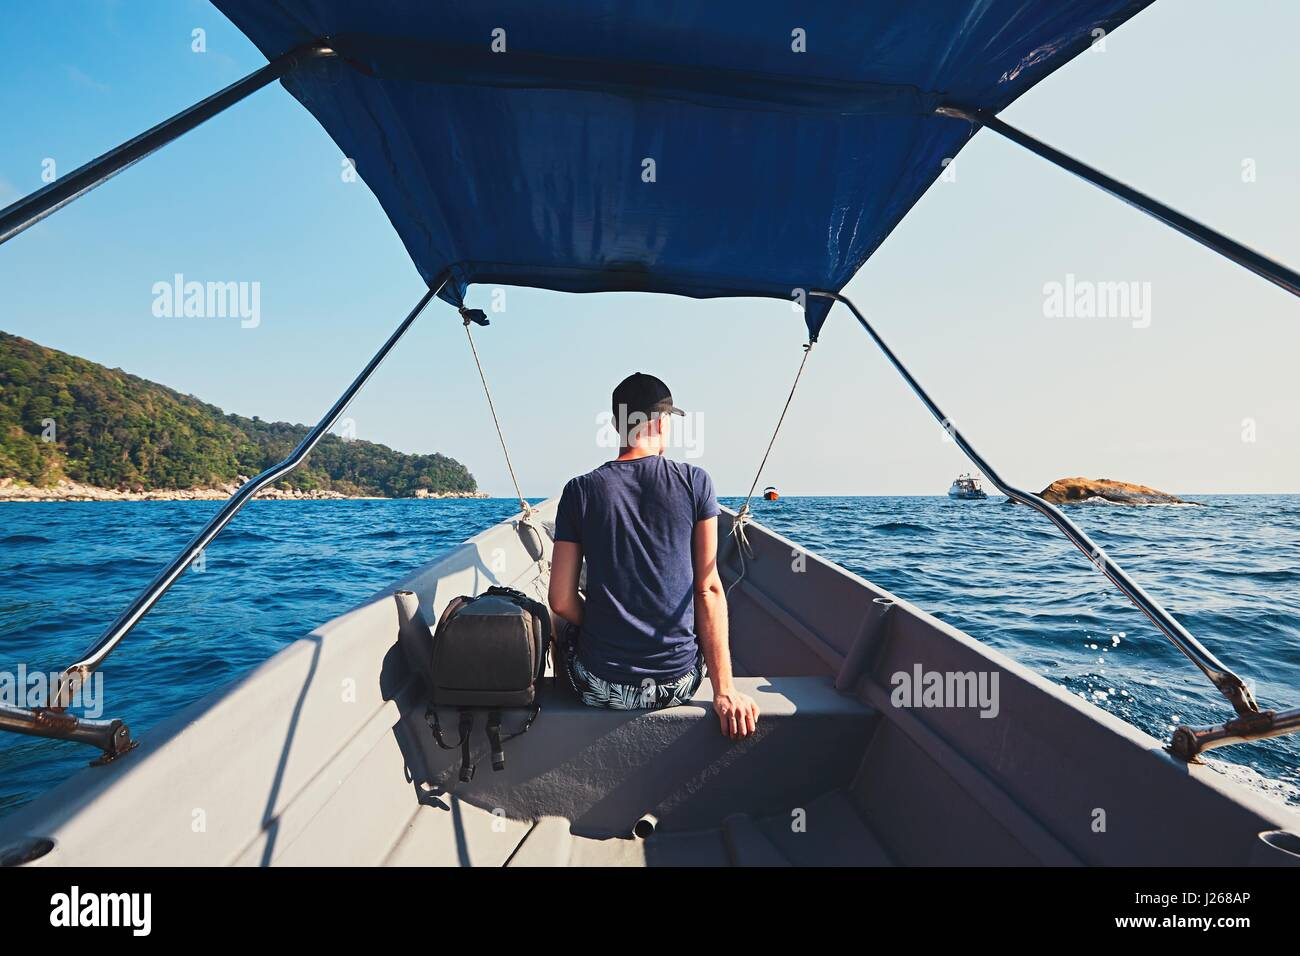 Adventure on the sea. Young man traveling by motorboat. - Stock Image